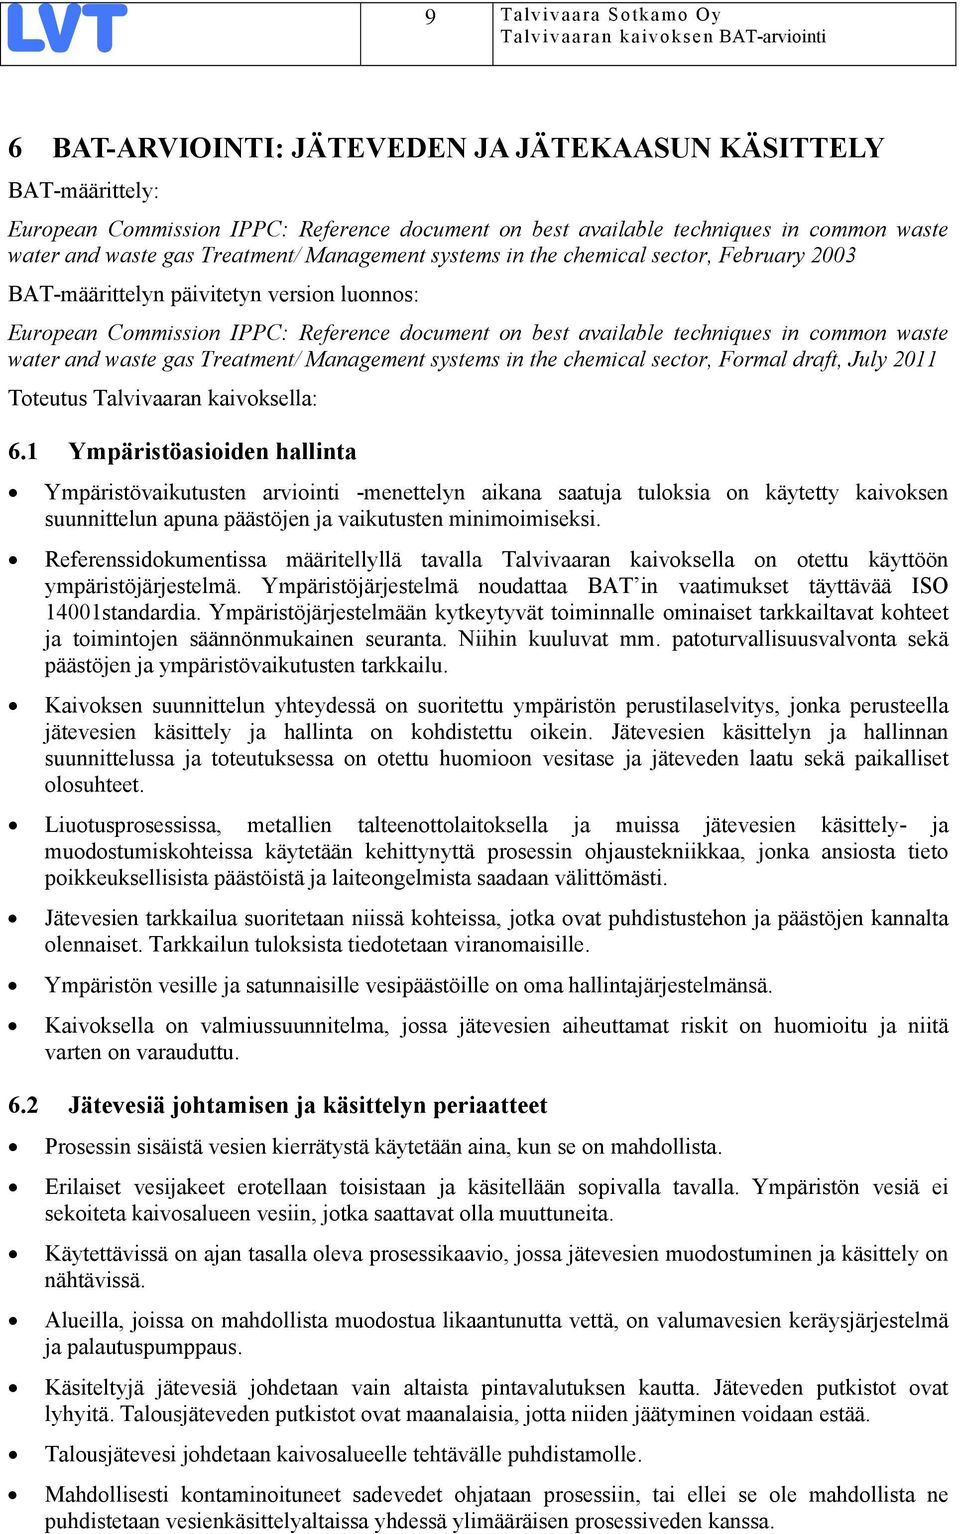 waste water and waste gas Treatment/ Management systems in the chemical sector, Formal draft, July 2011 Toteutus Talvivaaran kaivoksella: 6.